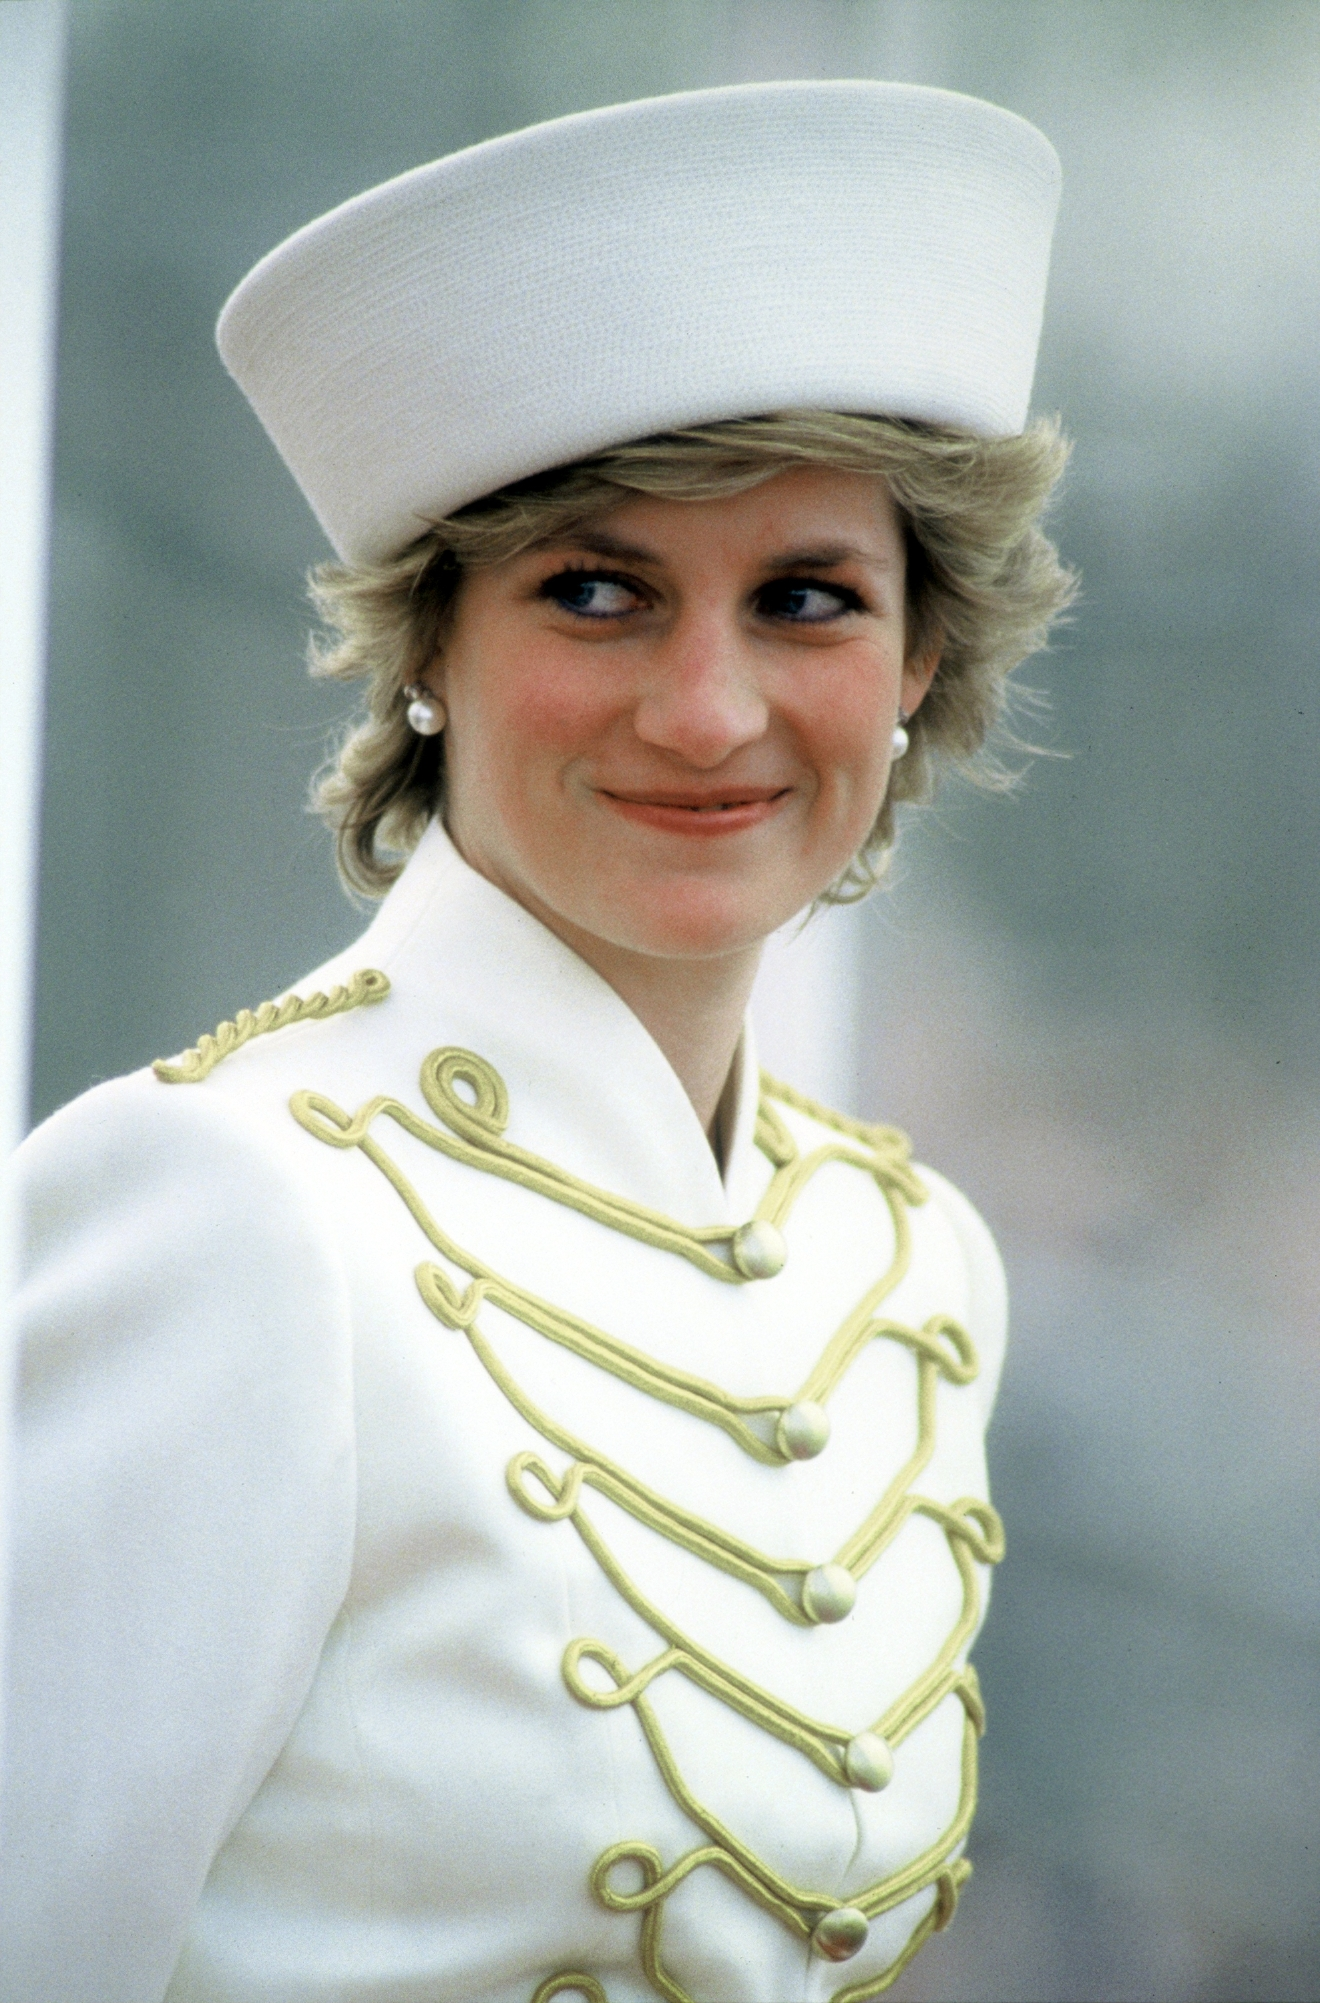 Princess Diana                  wearing a Catherine Walker military style white suit with drum majorette gold frogging and epaulettes during a visit to the Royal Military Academy Sandhurst.                  Surrey, England - 04.87                                    Featuring: Princess Diana                  Where: Surrey, United Kingdom                  When: 01 Jan 1987                  Credit: WENN